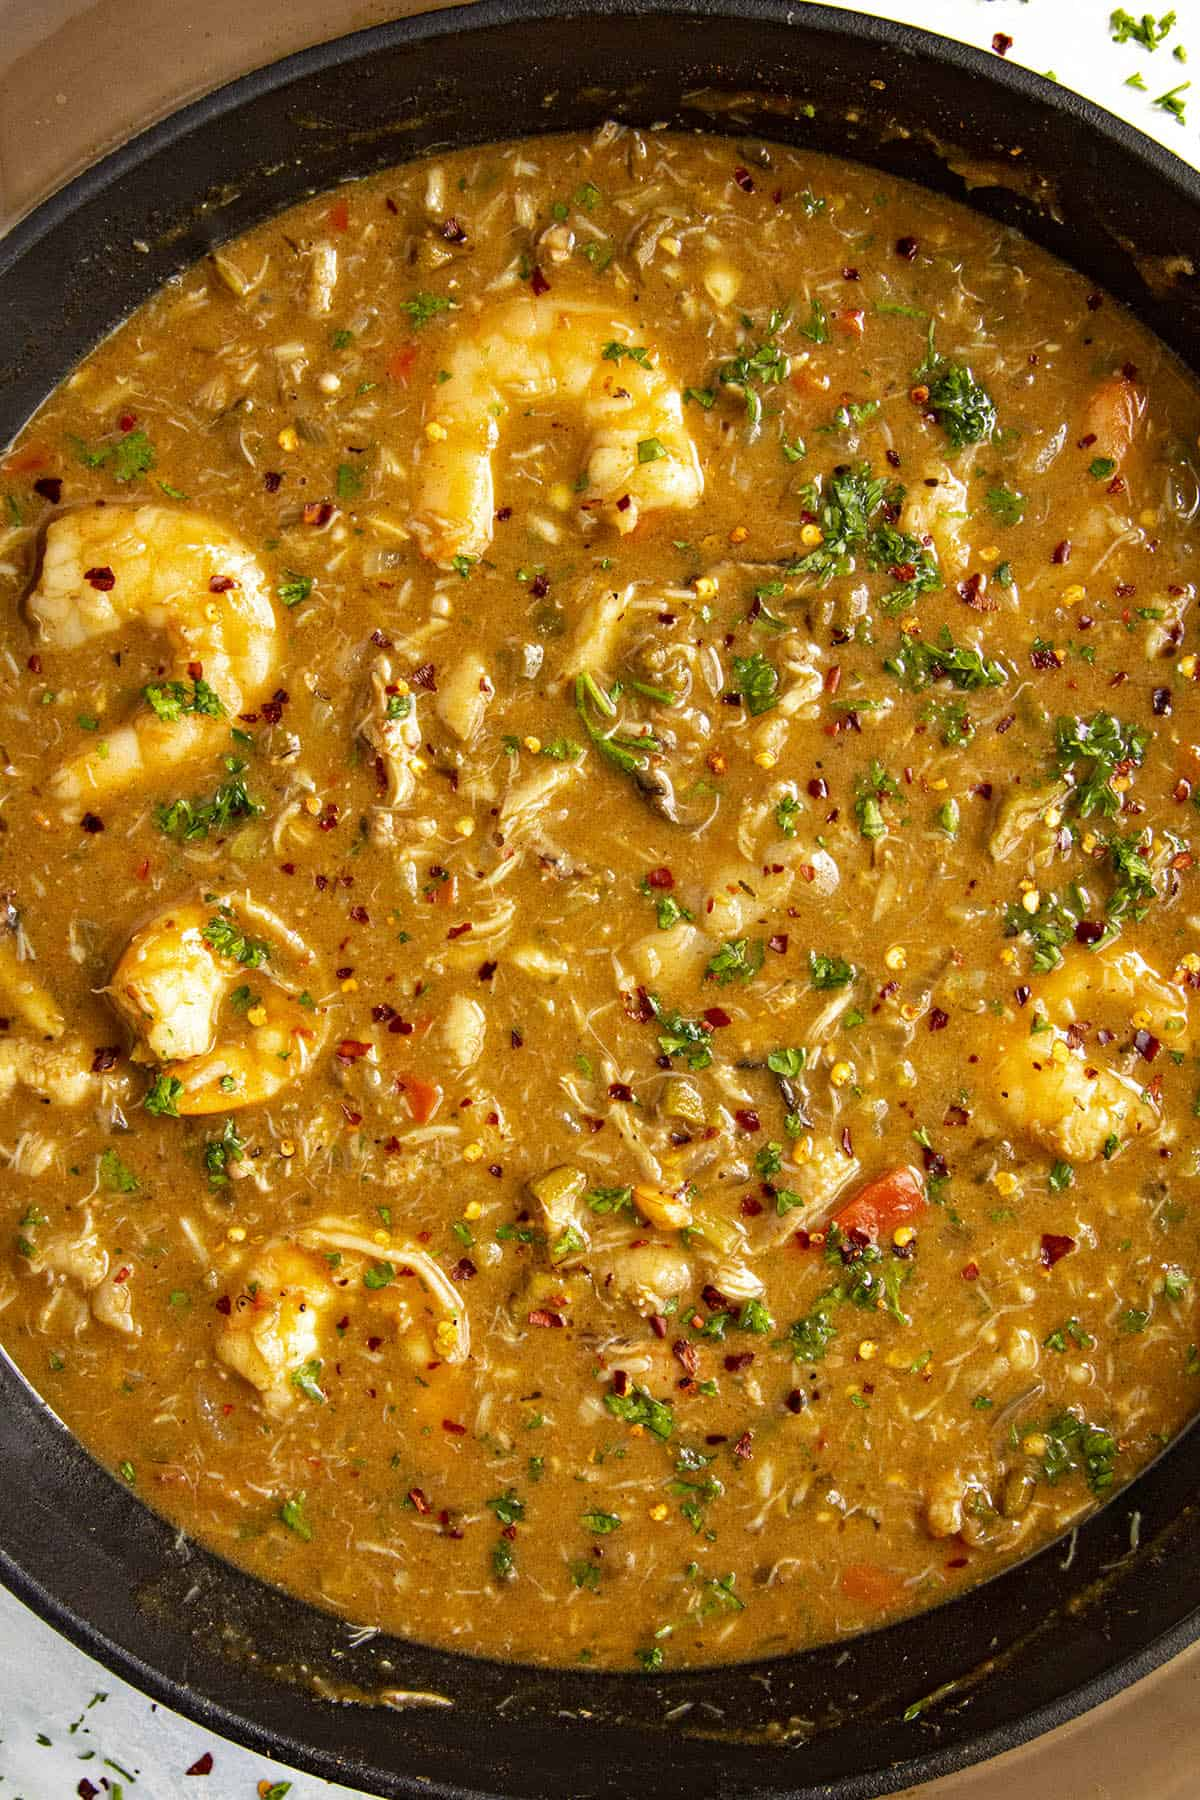 Seafood Gumbo in a pot